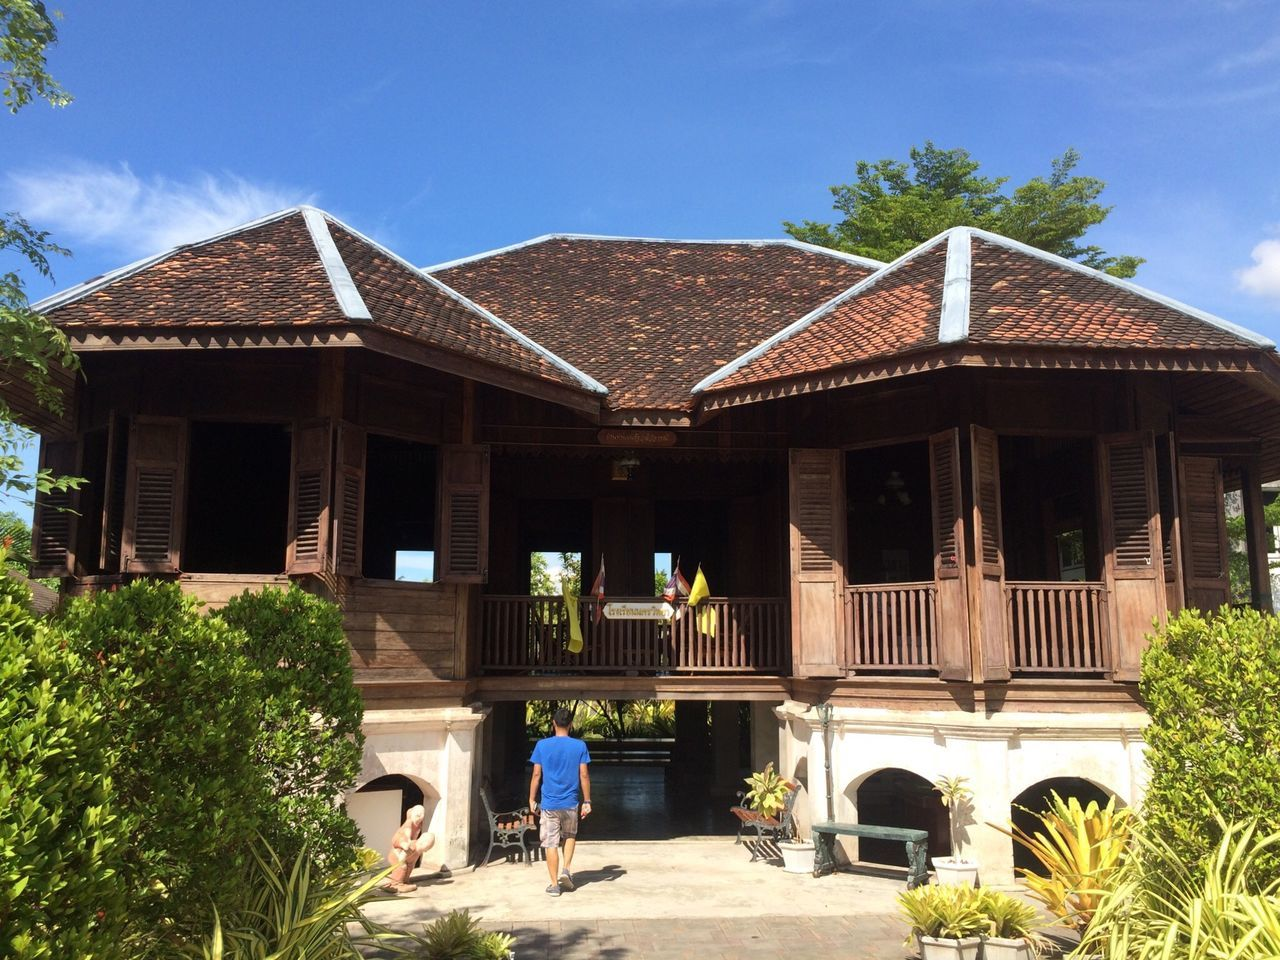 Back to the Future Architecture House Wooden House Old House Vintage Wooden Thailand Nakhon Si Thammarat Man Walking Green Sky Roof Building Museum The Essence Of Summer People And Places Snap A Stranger